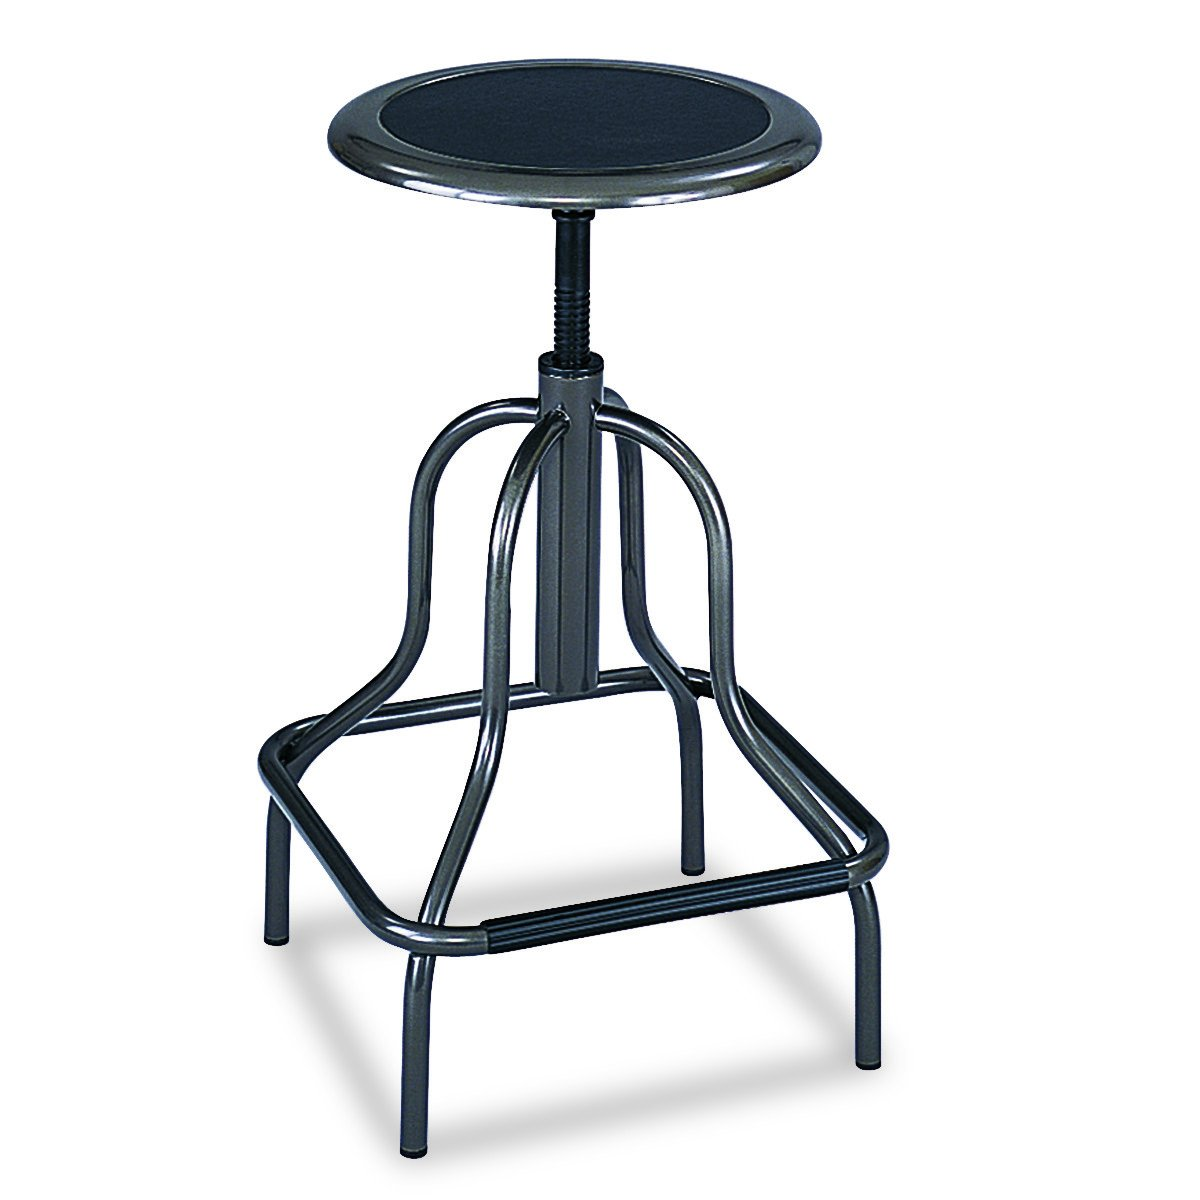 Safco Products Diesel Extended-Height Stool 6665, Industrial Style, Steel Frame, Padded Seat, Height-Adjustable